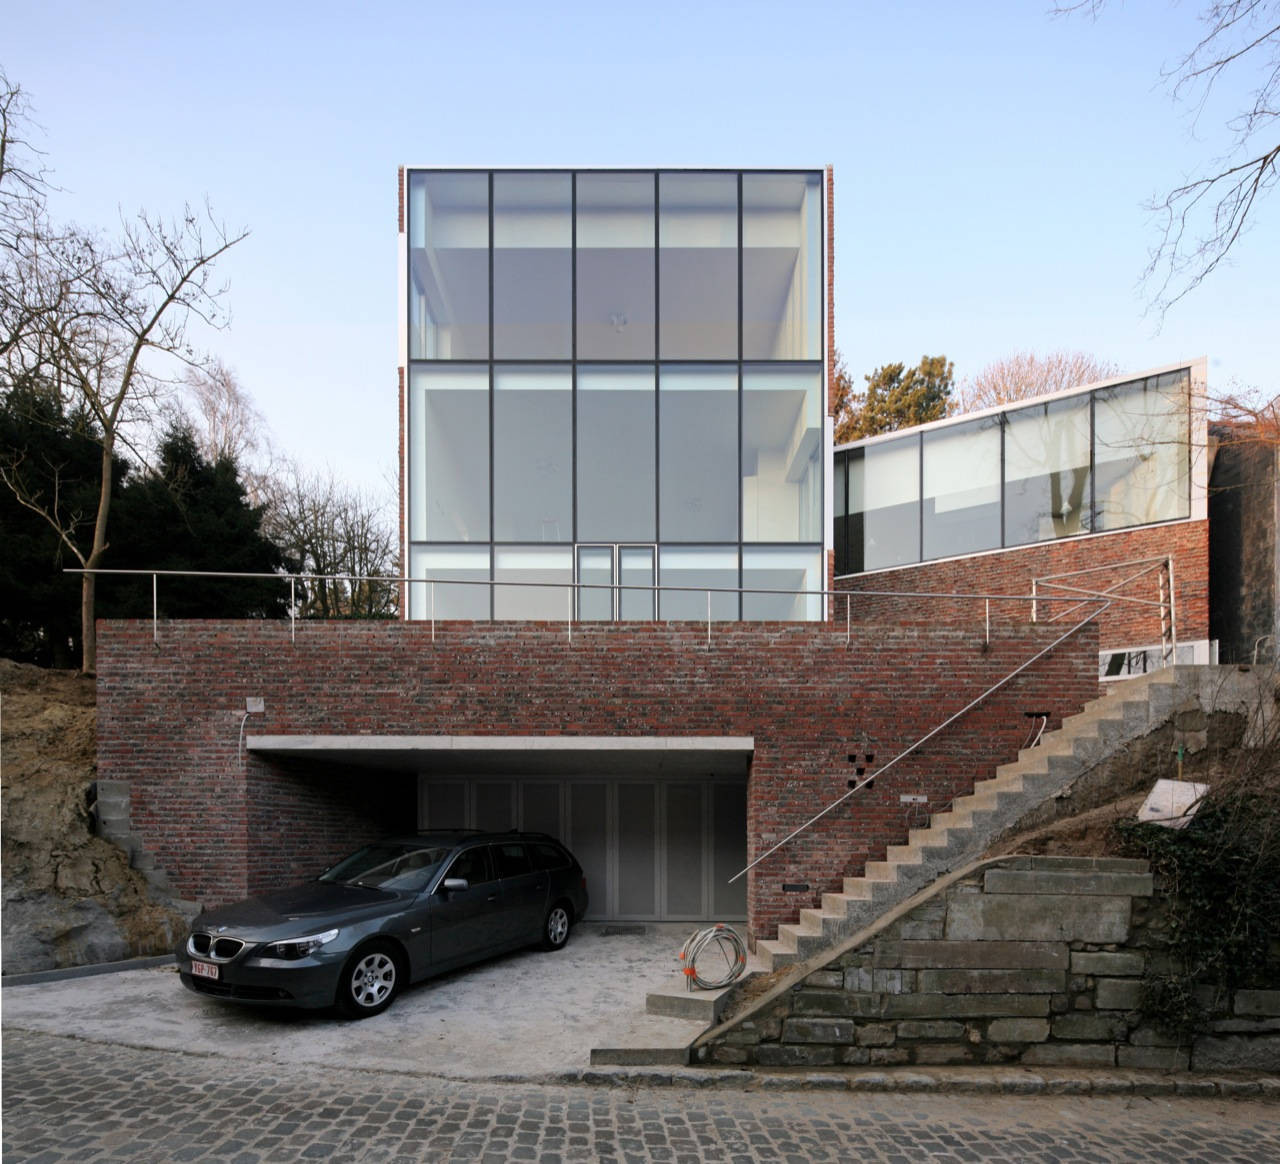 Stine gybels house pierre hebbelinck archdaily for Maison pierre